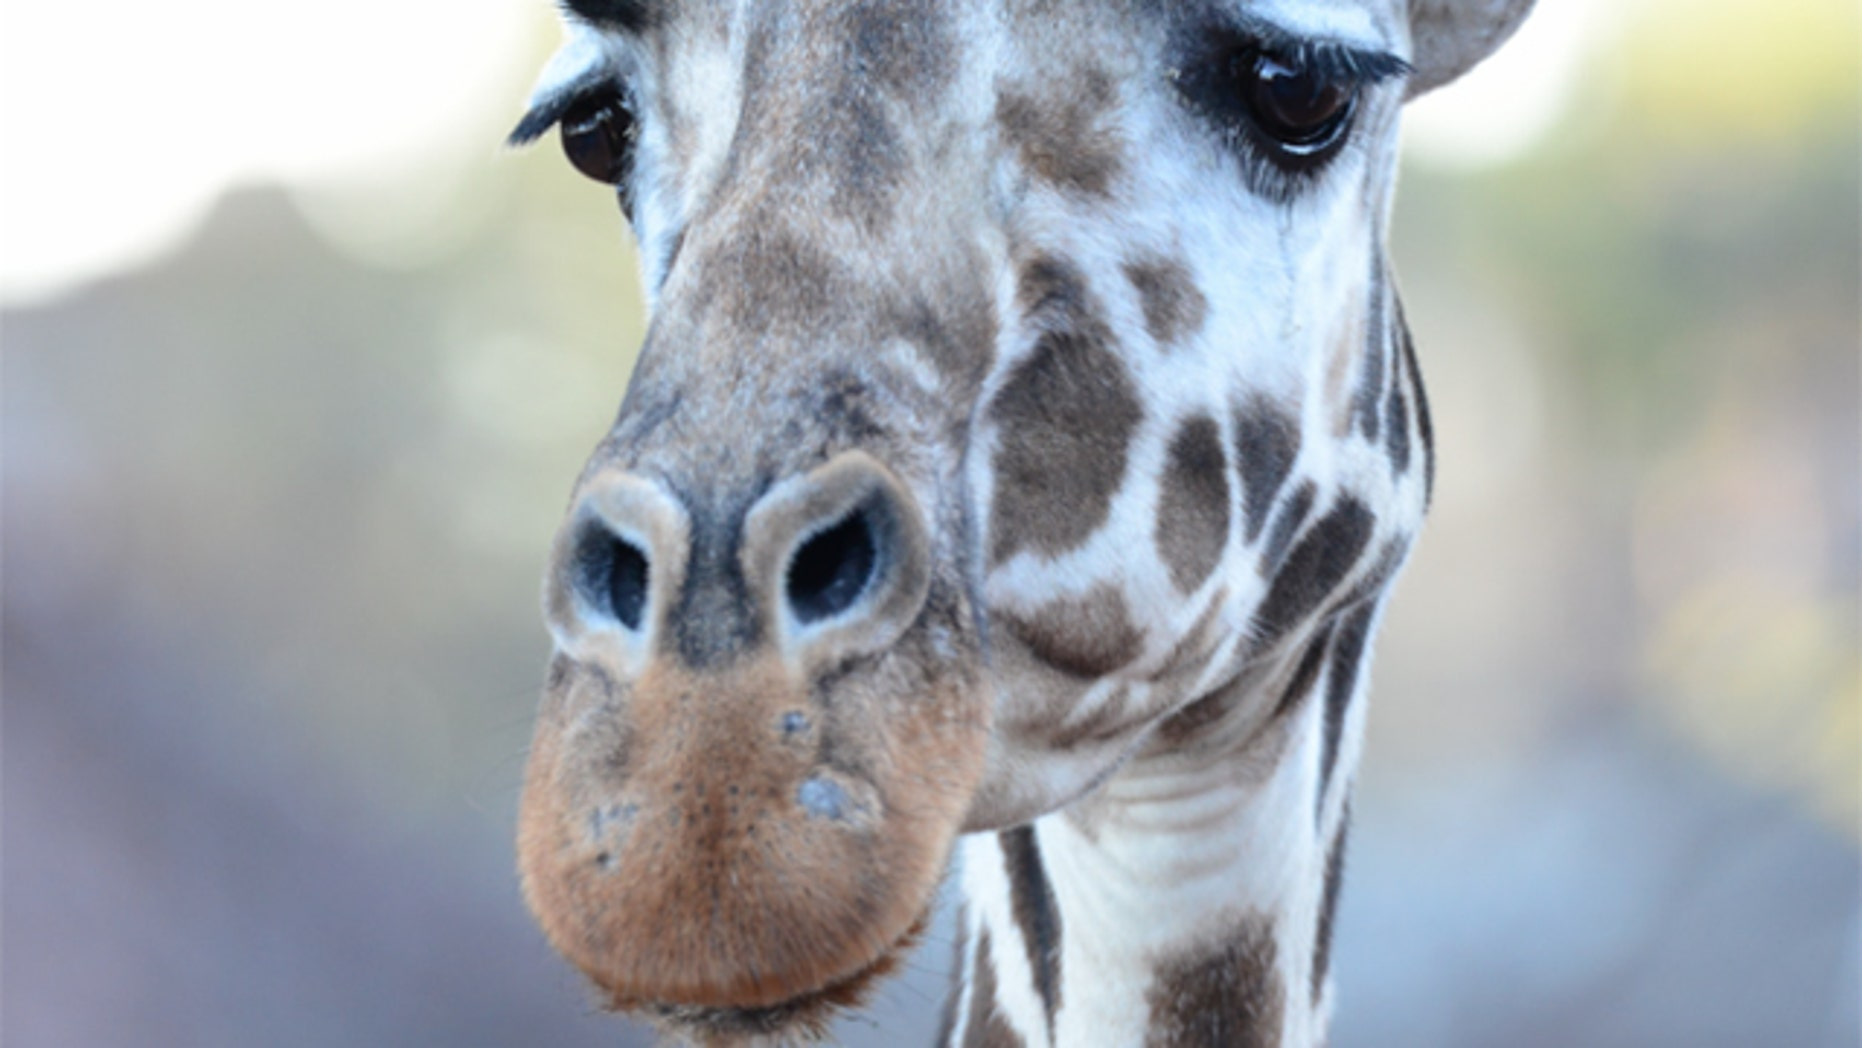 The oldest giraffe in North America died Thursday at a zoo in Colorado at age 32.